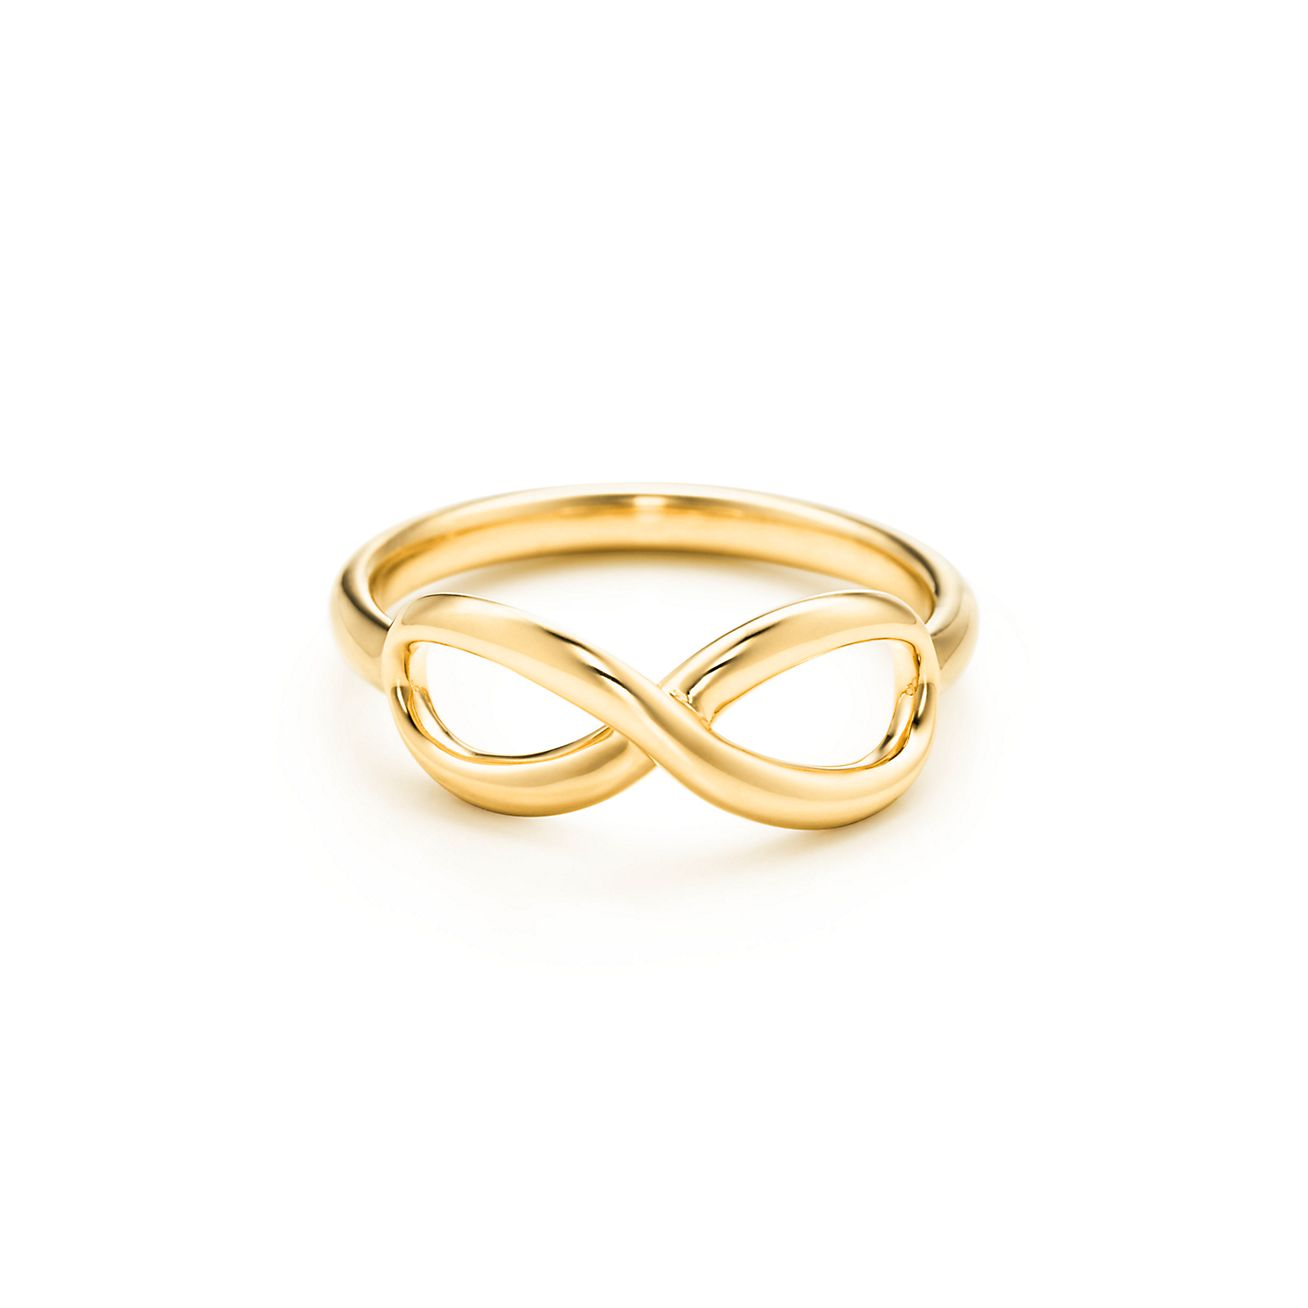 Tiffany Infinity ring in 18k gold | Tiffany & Co.